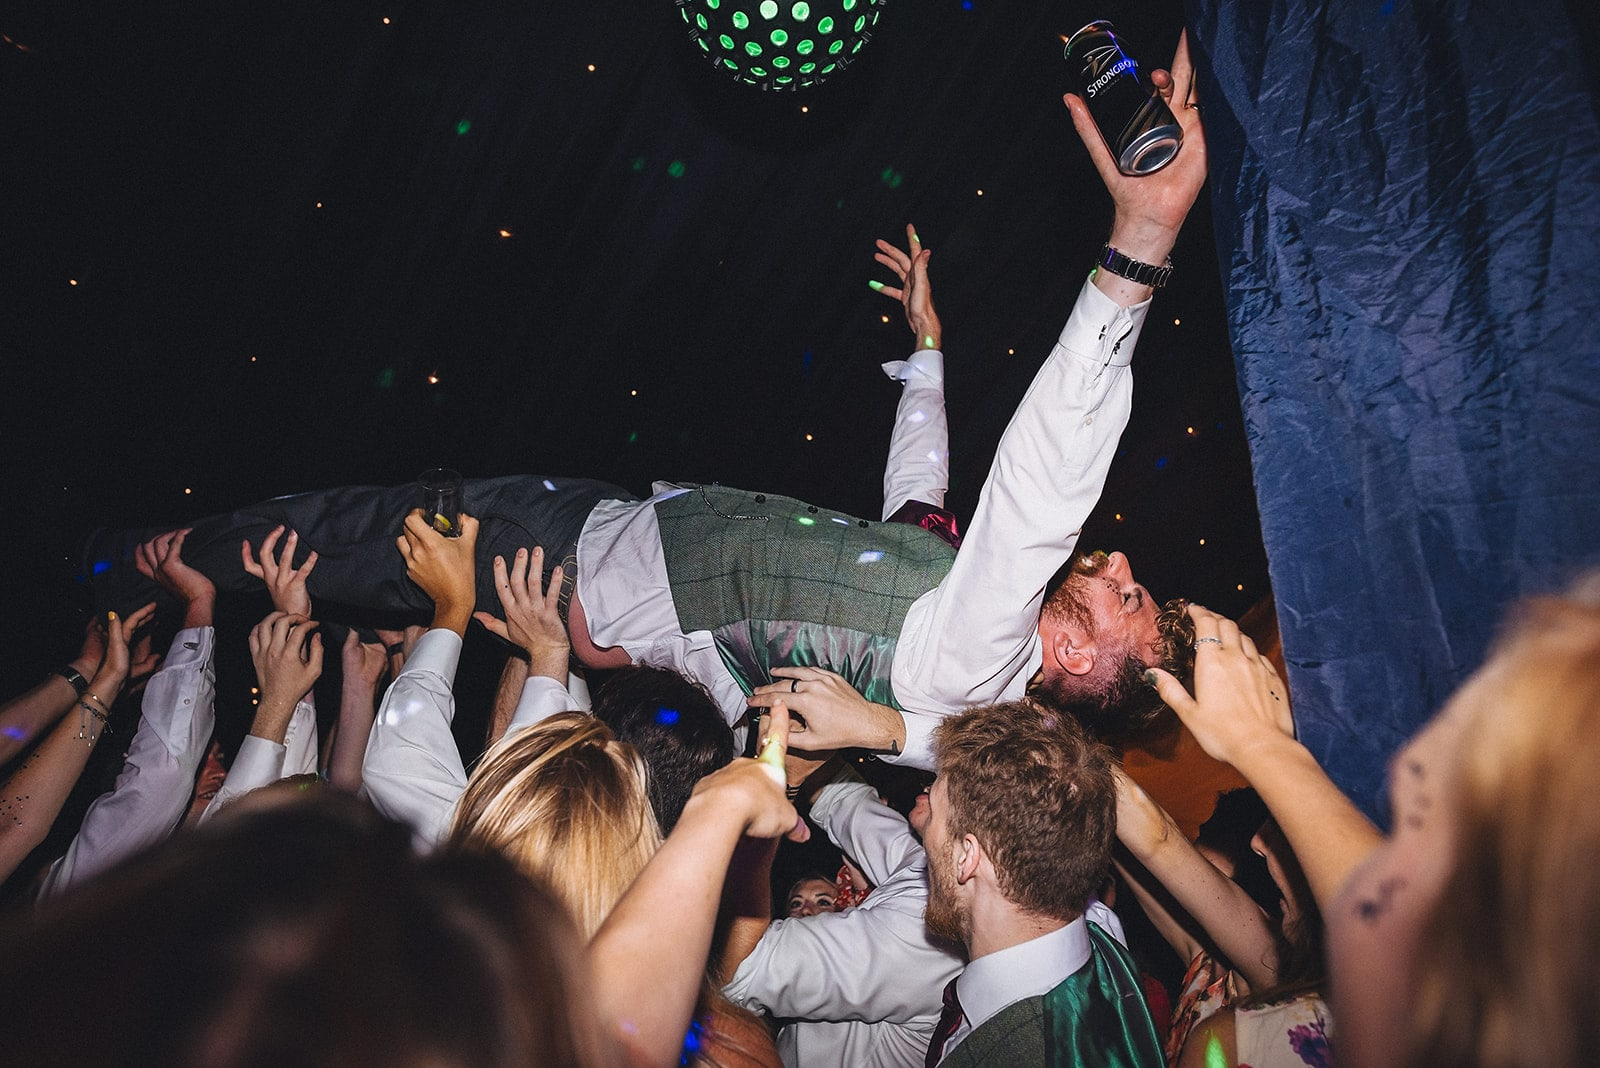 Groom crowdsurfing held up by lots of hands